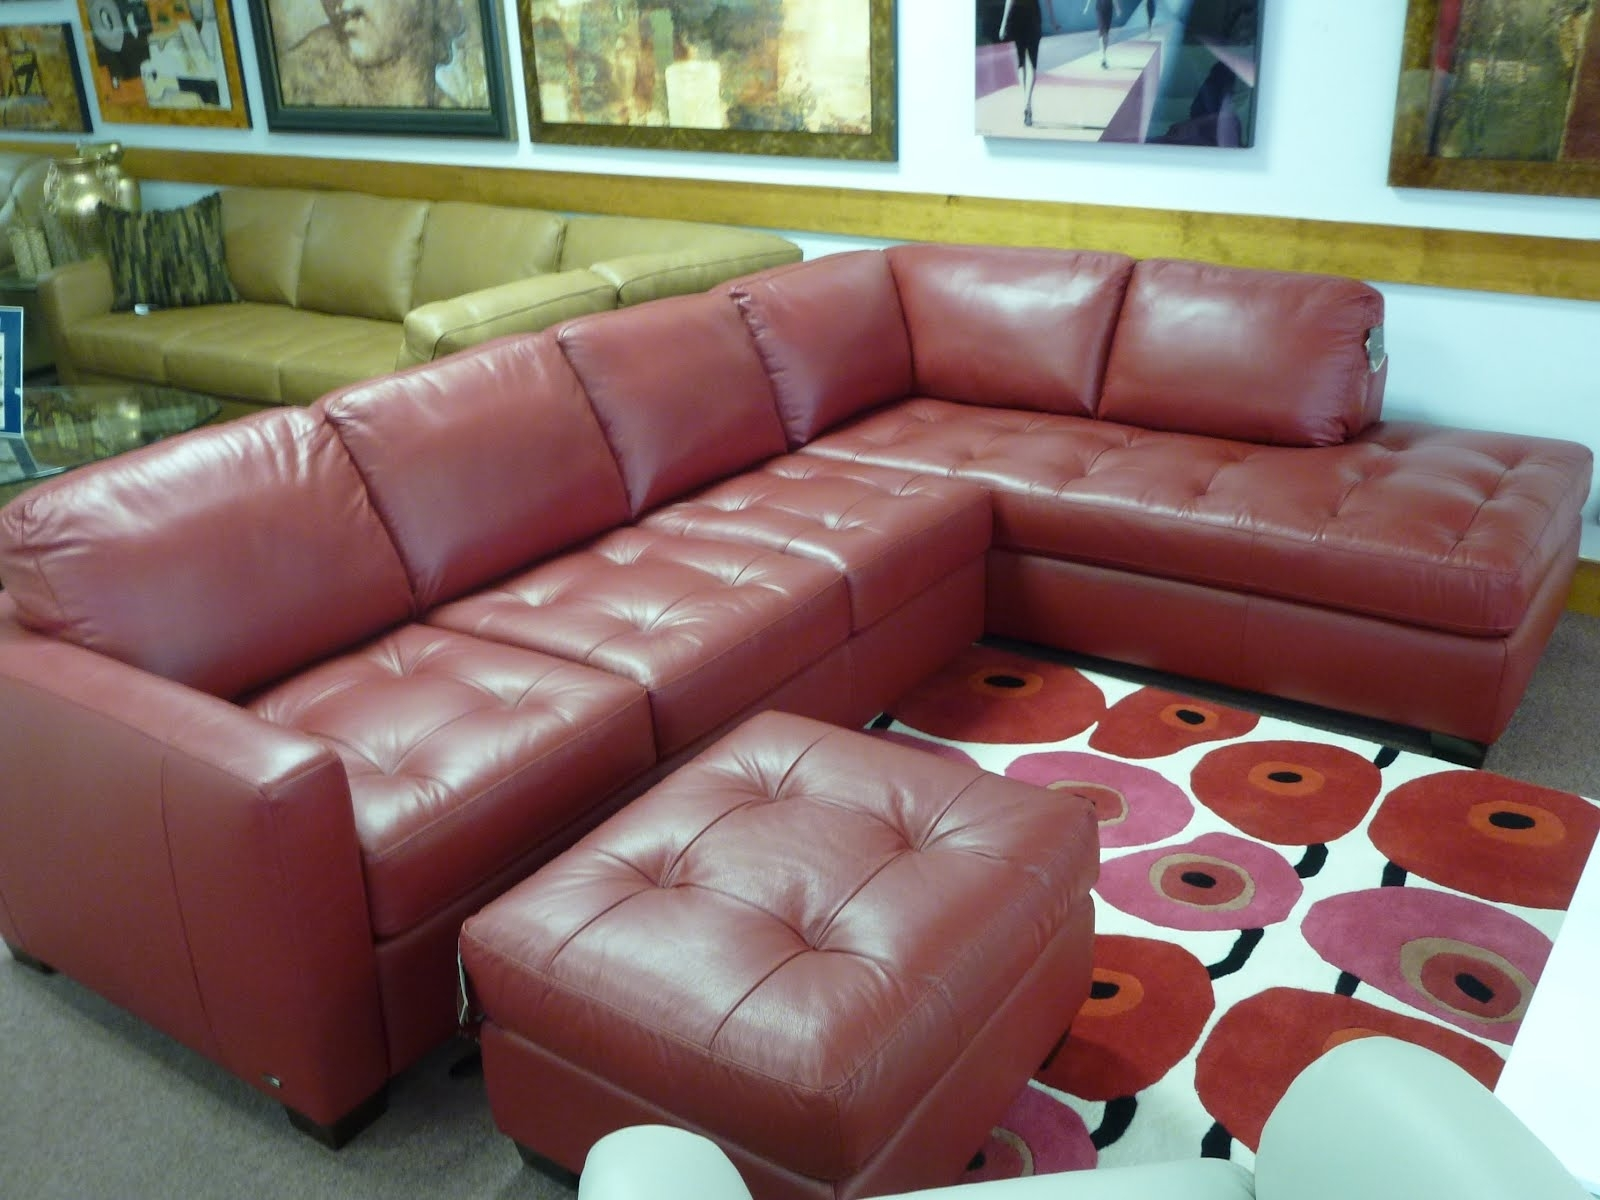 Red Leather Sectional Sofa | Red Leather Sectional Sofa With Chaise Inside Red Leather Sectional Sofas With Ottoman (View 8 of 10)